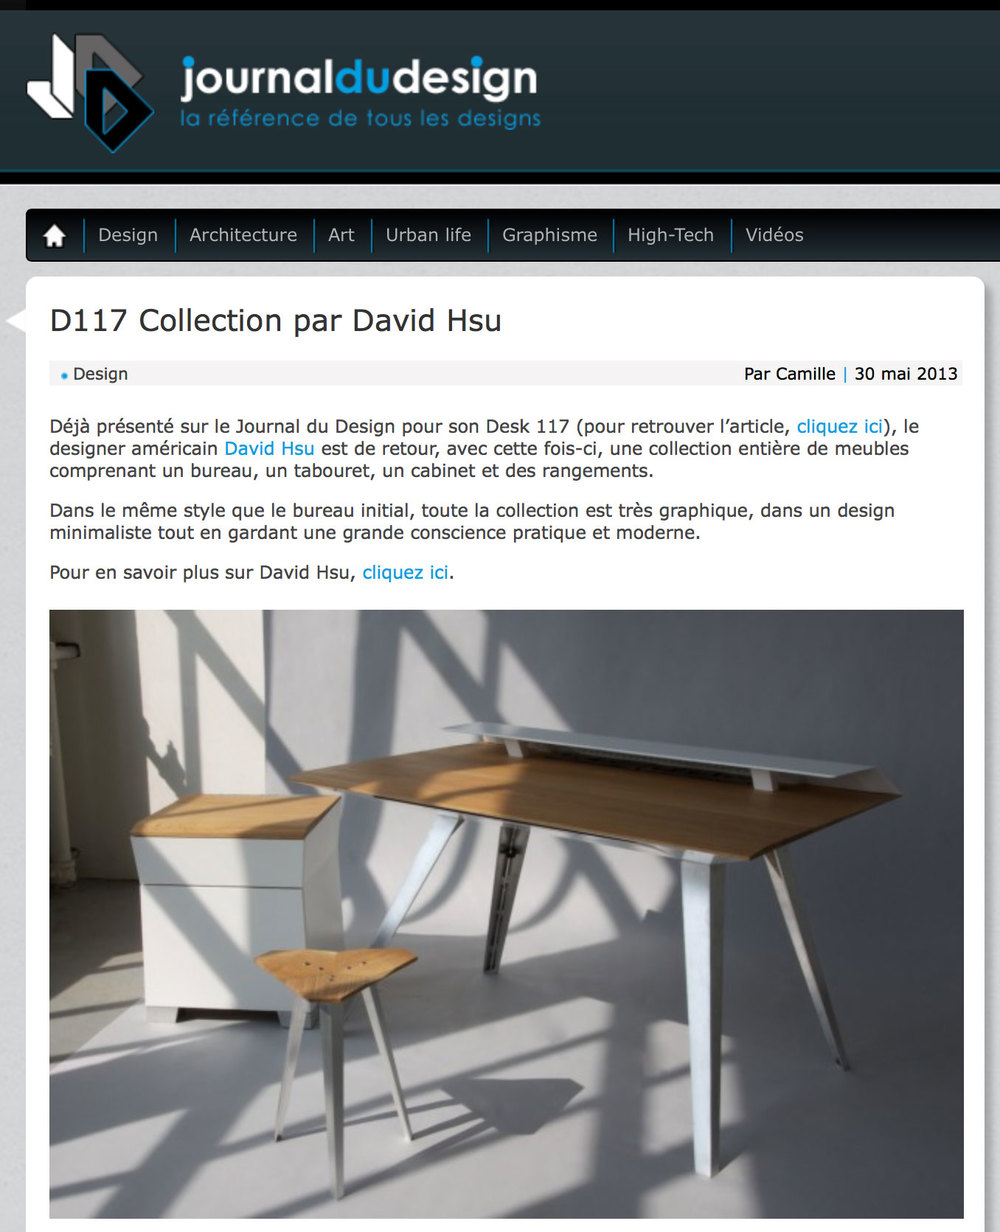 D117 Collection on Journal du Design